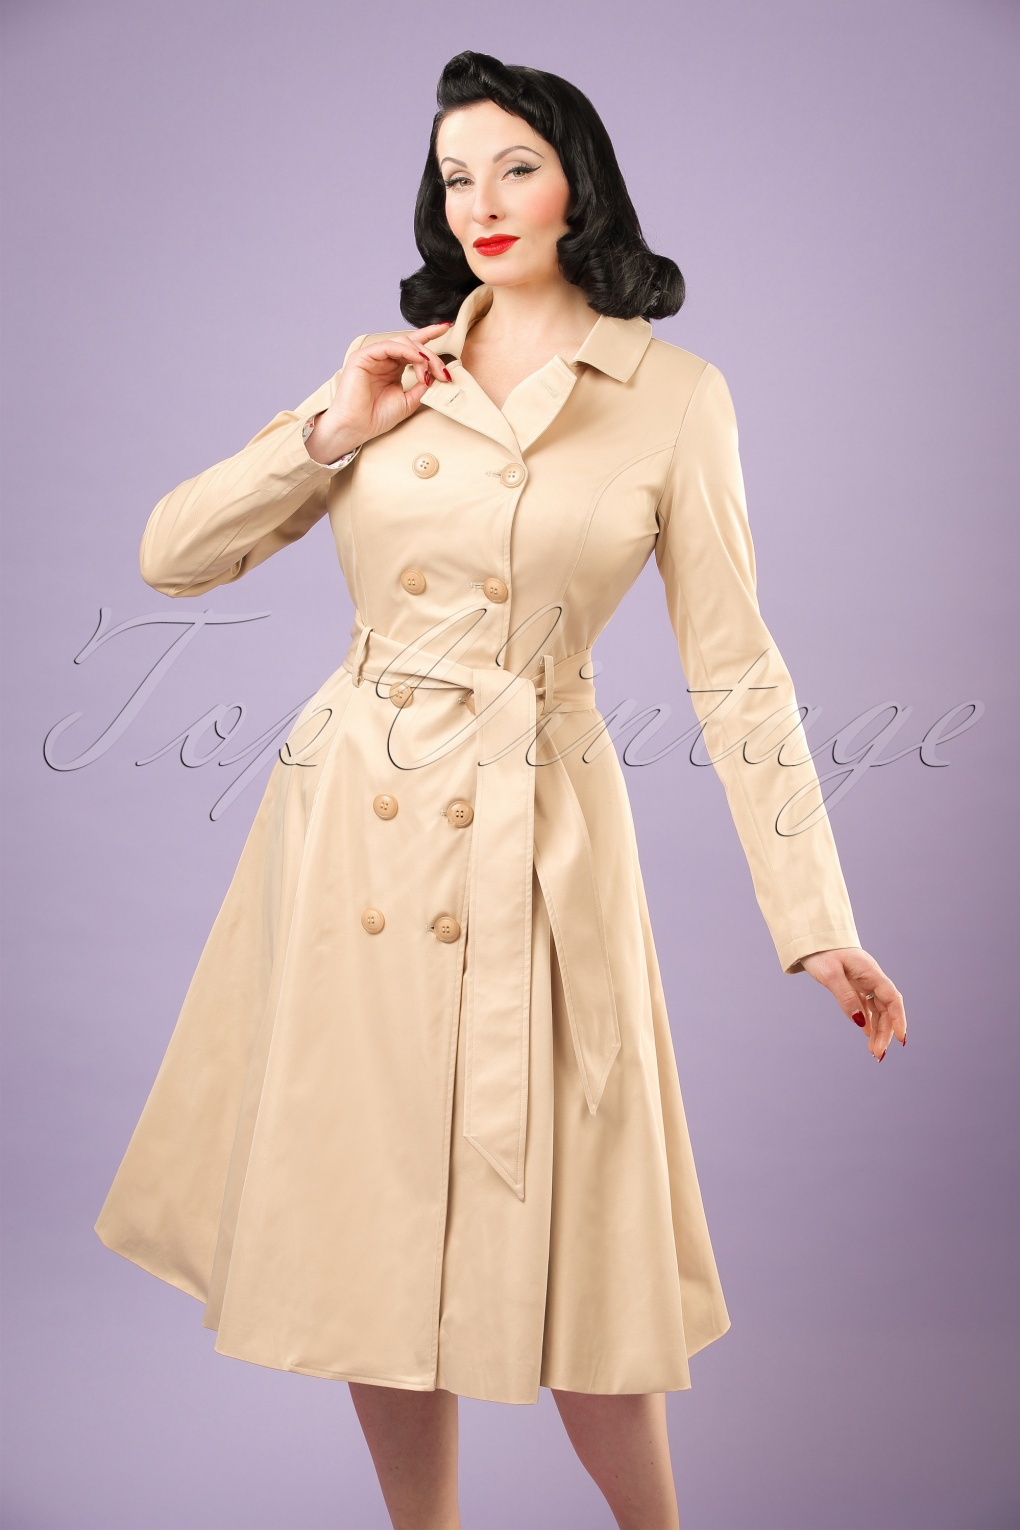 1950s Jackets, Coats, Bolero | Swing, Pin Up, Rockabilly 40s Korrina Swing Trench Coat in Beige �128.62 AT vintagedancer.com